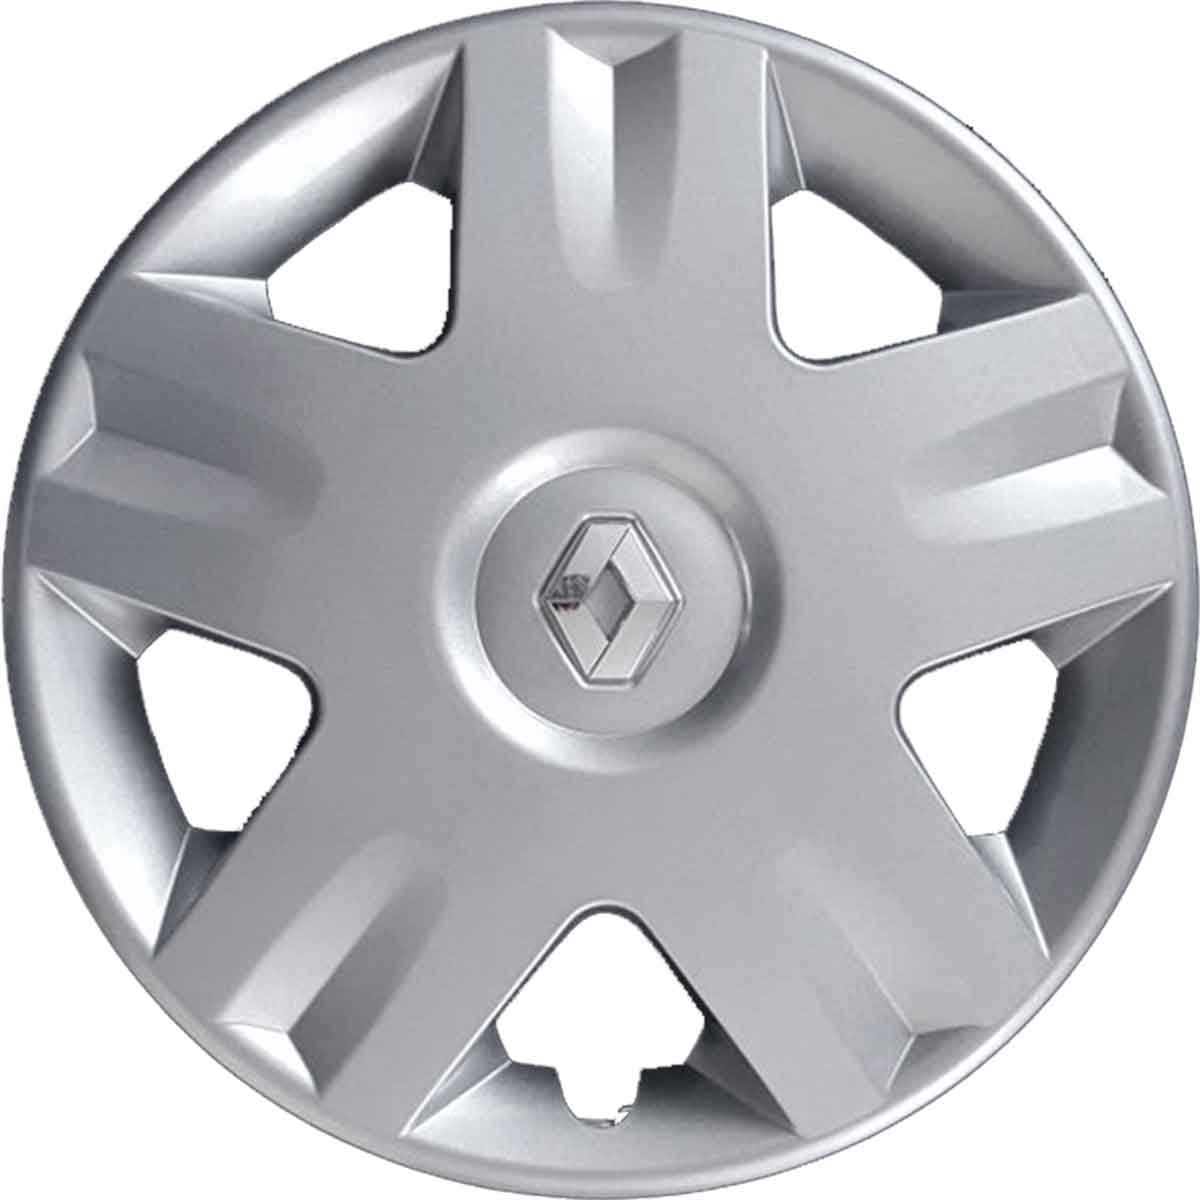 Series 4 Hubcaps Wheel Studs Cups 14 Clio 2001 Onwards Chrome Logo Not Original Aftermarket